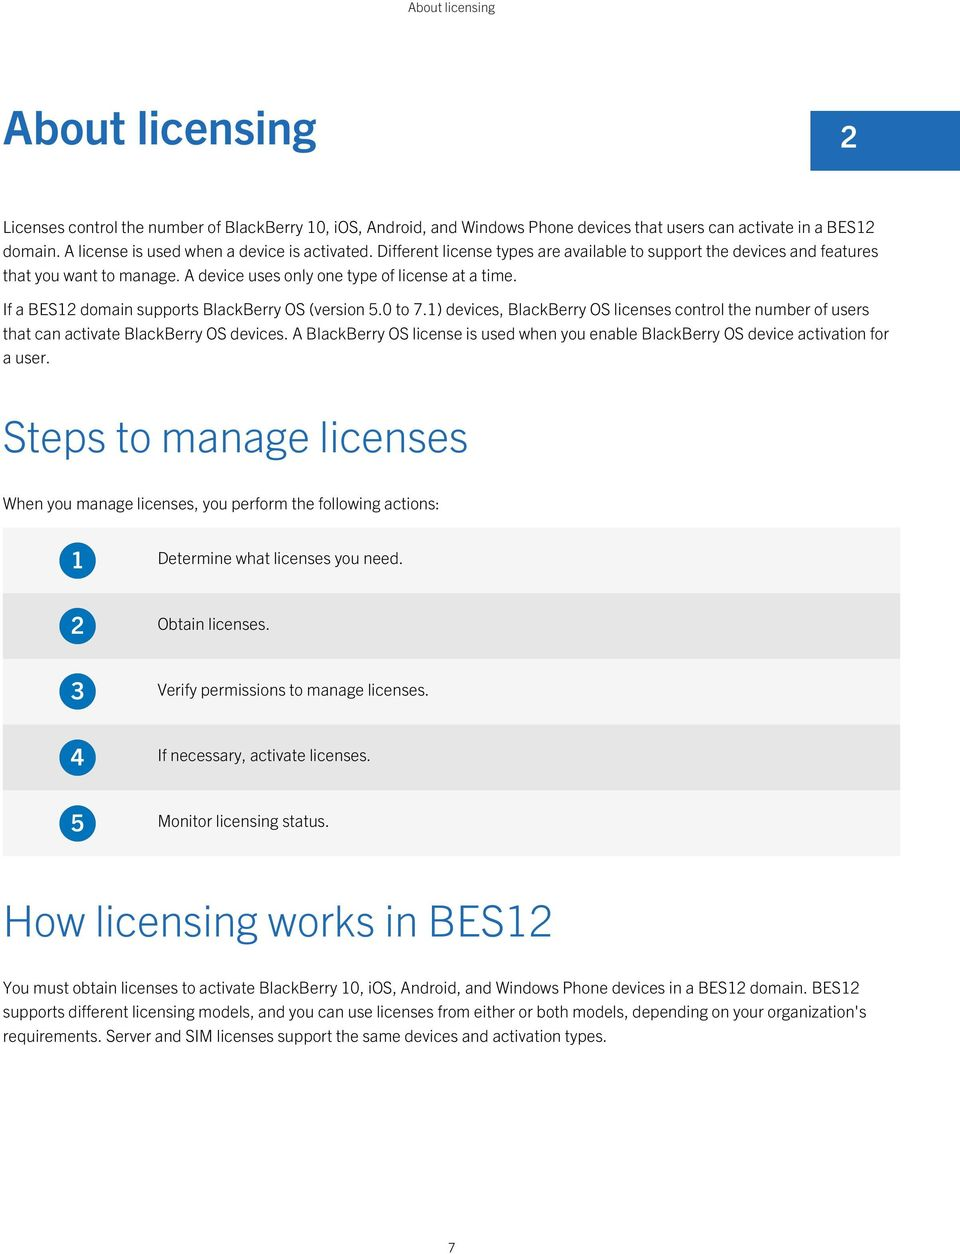 If a BES12 domain supports BlackBerry OS (version 5.0 to 7.1) devices, BlackBerry OS licenses control the number of users that can activate BlackBerry OS devices.